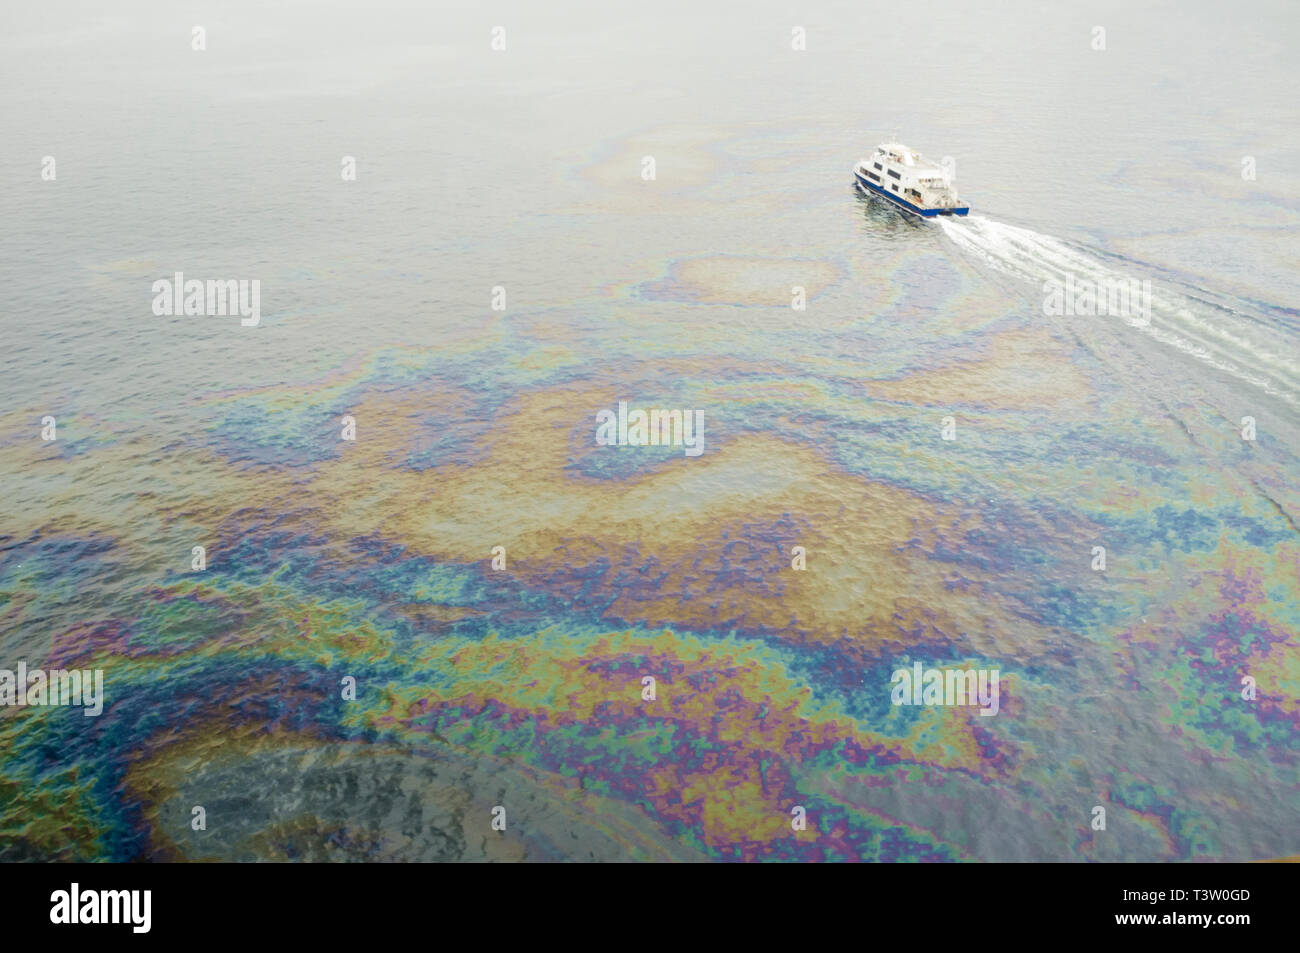 Oil spills below Rio-Niteroi bridge, Guanabara Bay, Rio de Janeiro, Brazil - the bay has been heavily impacted by urbanization, deforestation, and pollution of its waters with sewage, garbage, and oil spills. - Stock Image